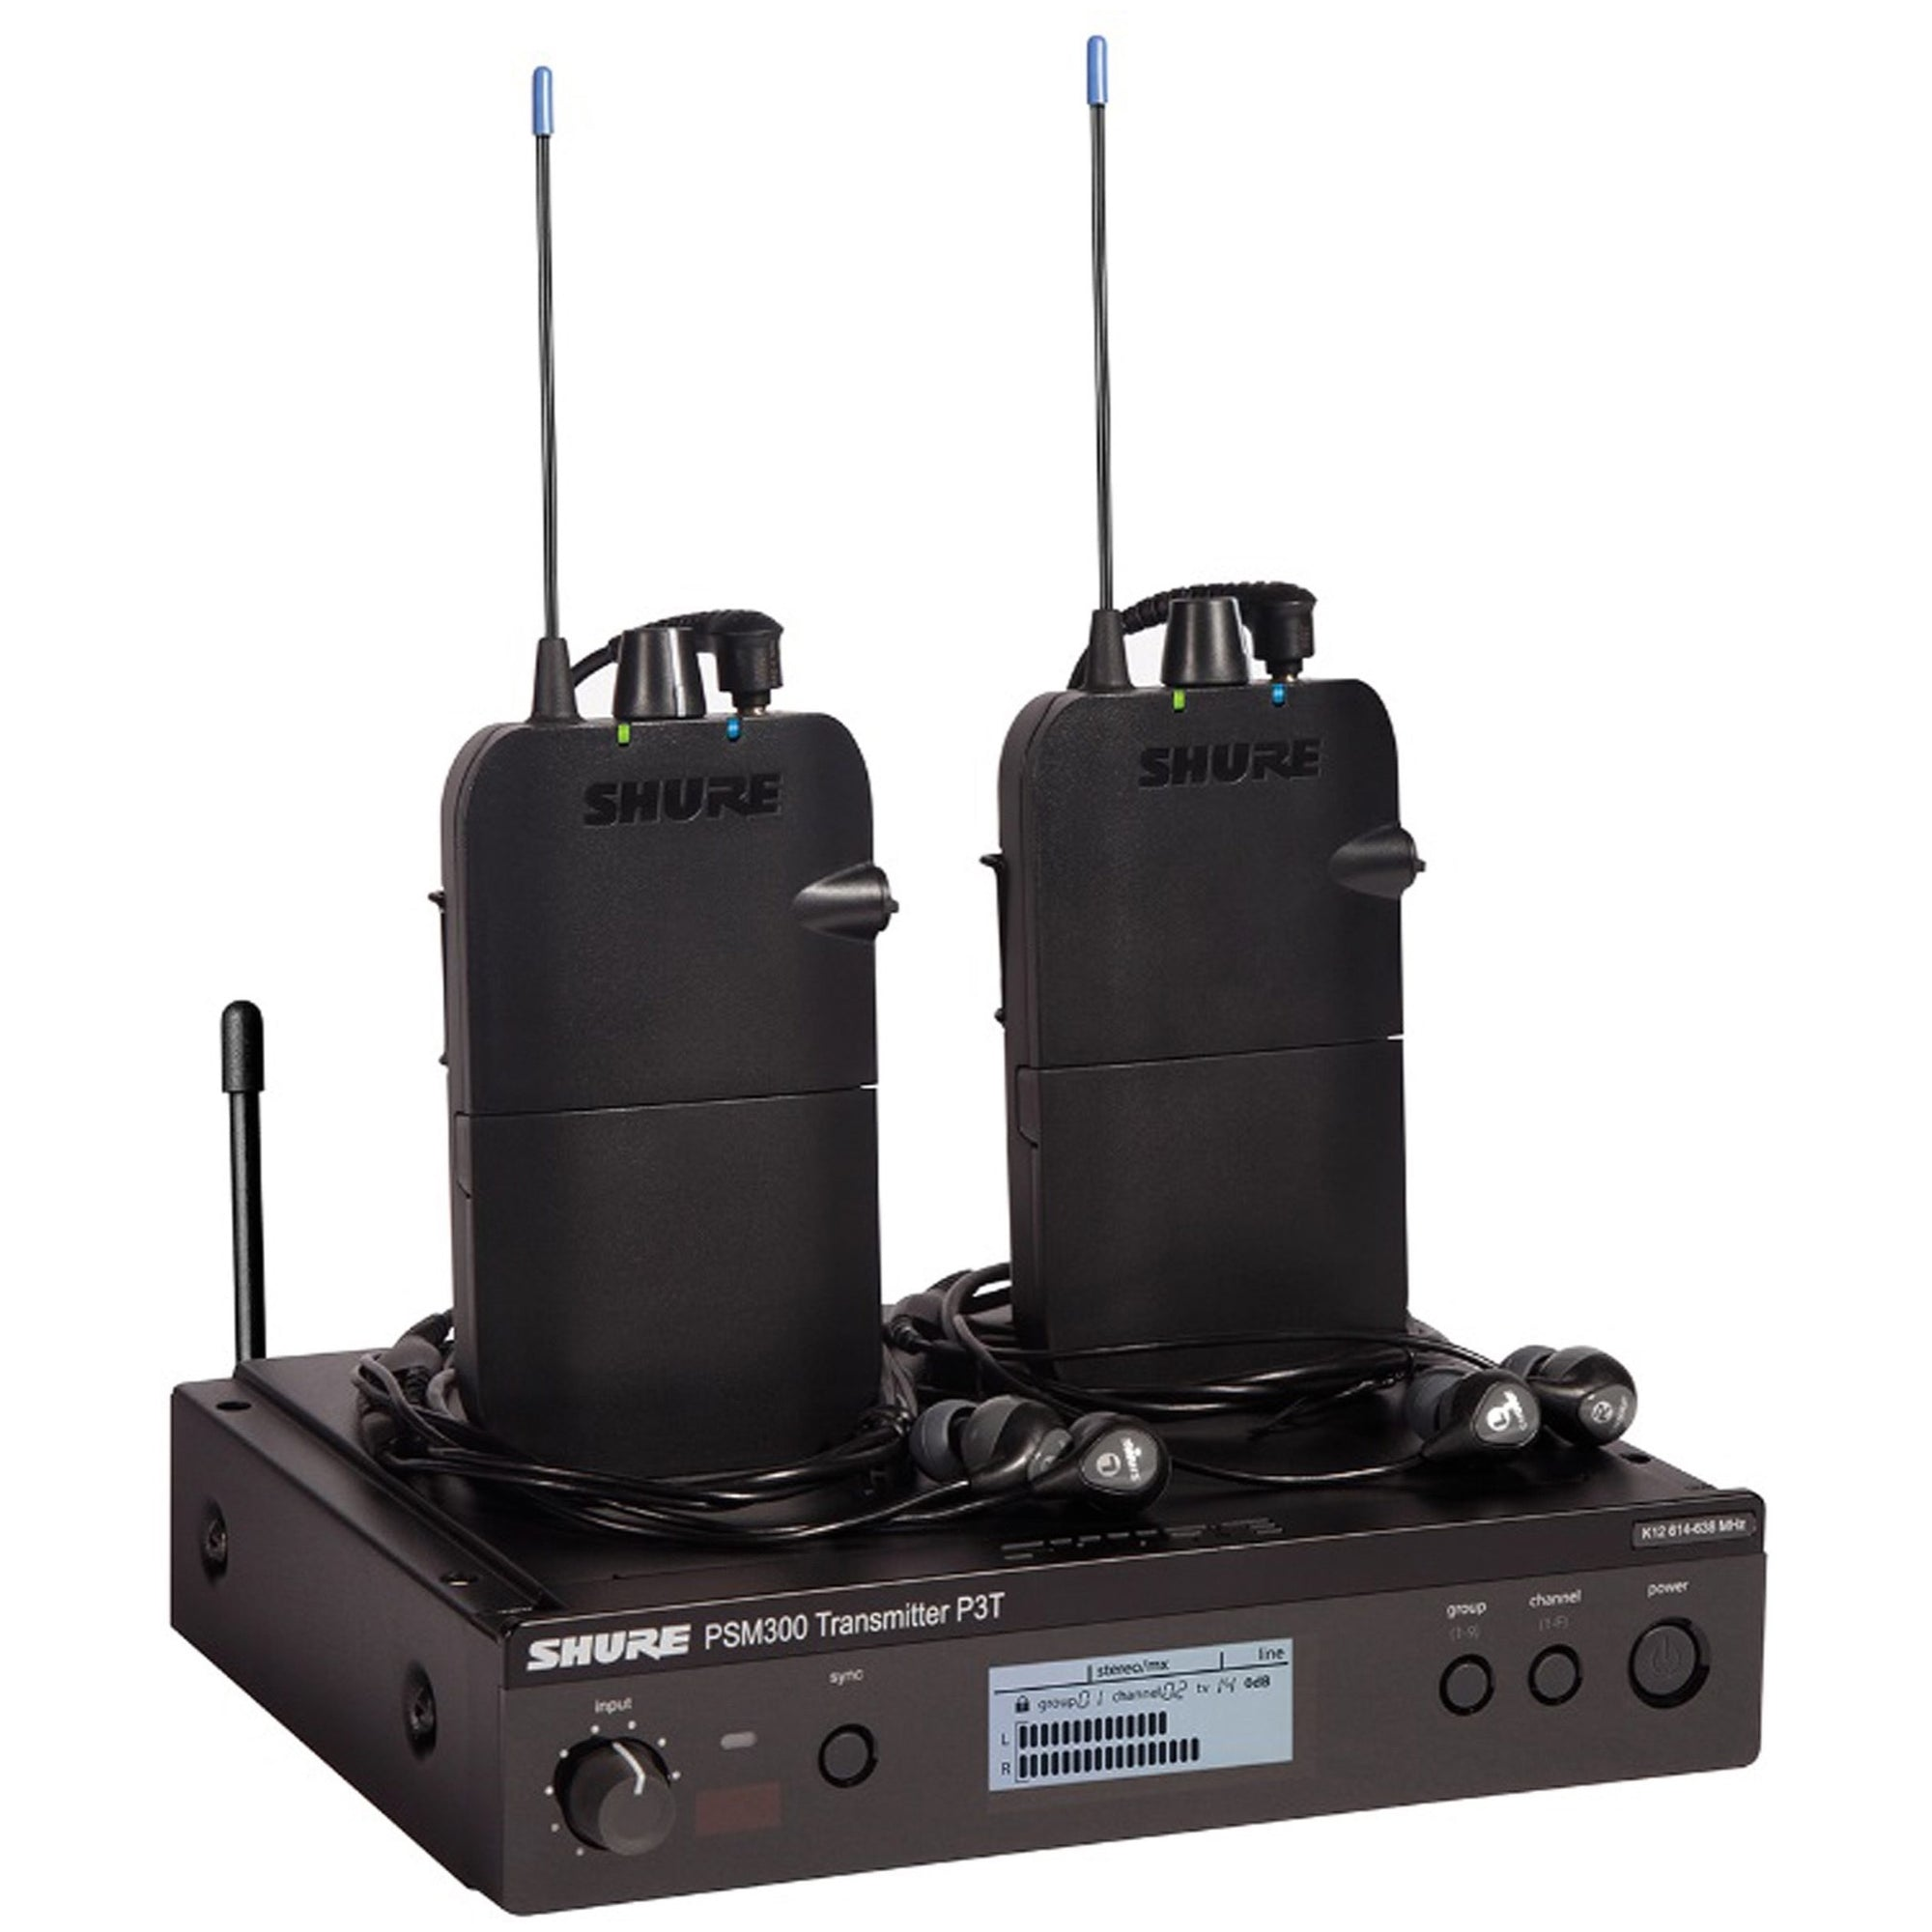 Shure PSM 300 Twin Pack IEM Wireless In-Ear Monitor System with SE112 Earphones, Band H20 (518.200 - 541.800 MHz)